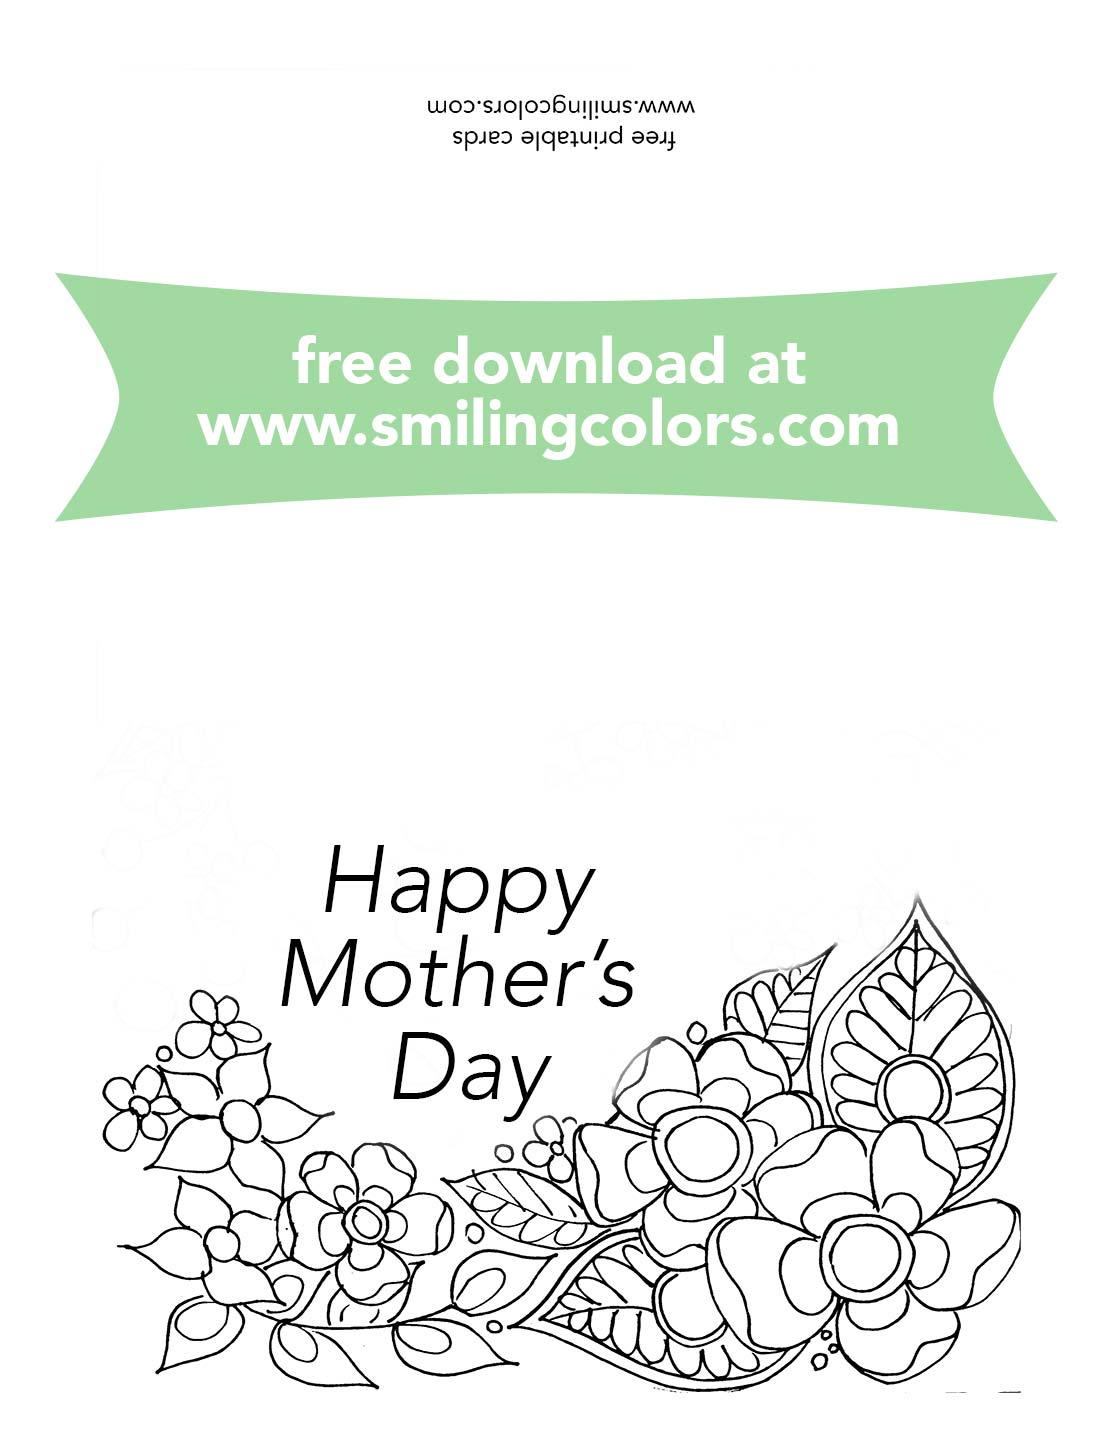 photo relating to Happy Mothers Day Printable Card named Moms working day coloring playing cards, Absolutely free in the direction of print and shade at this time